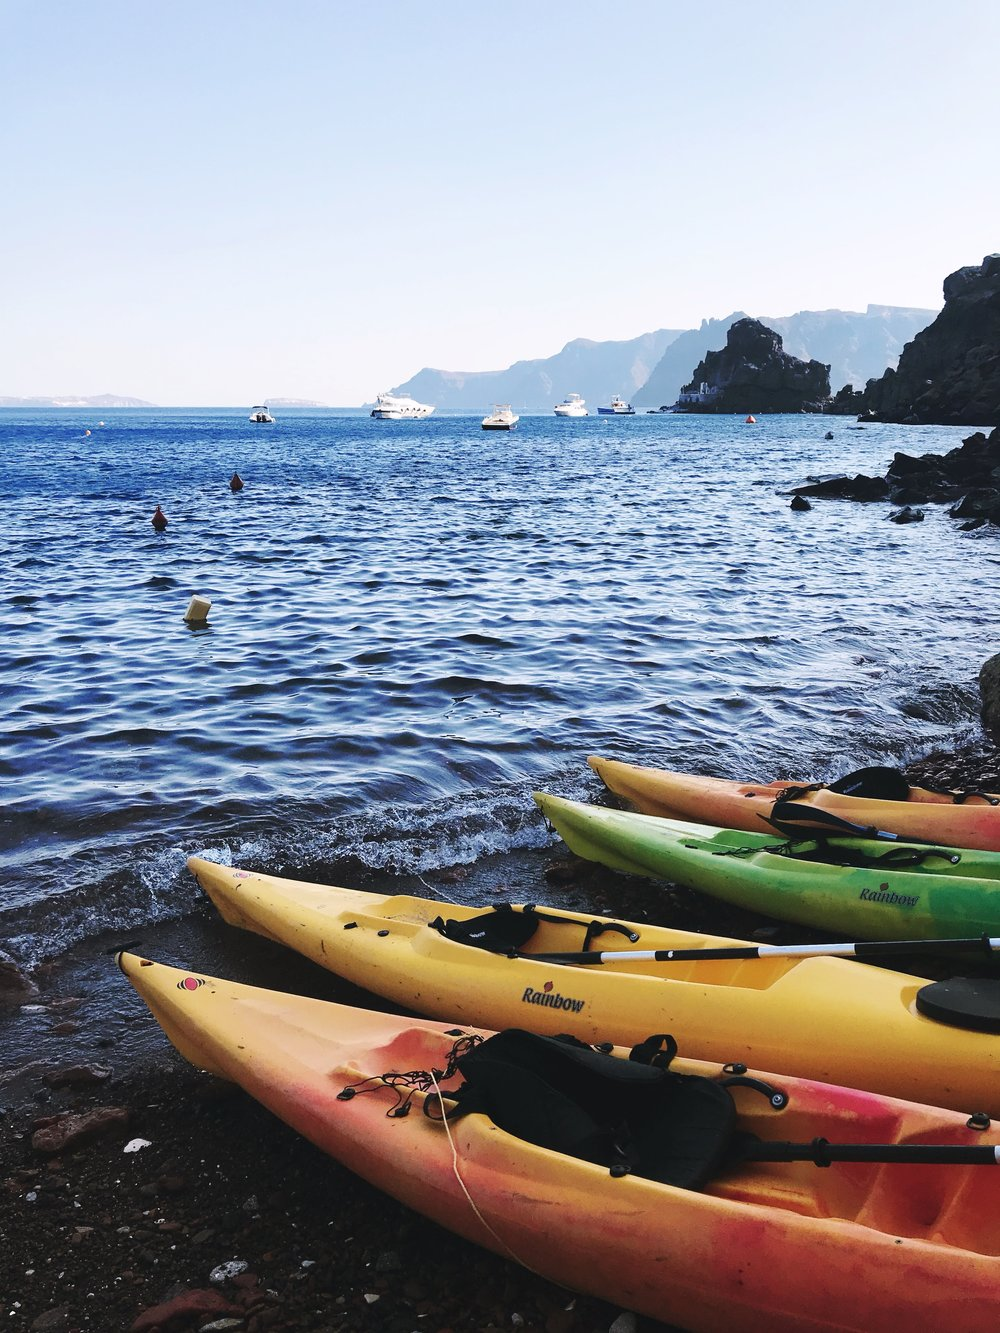 Kayaking in the Mediterranean